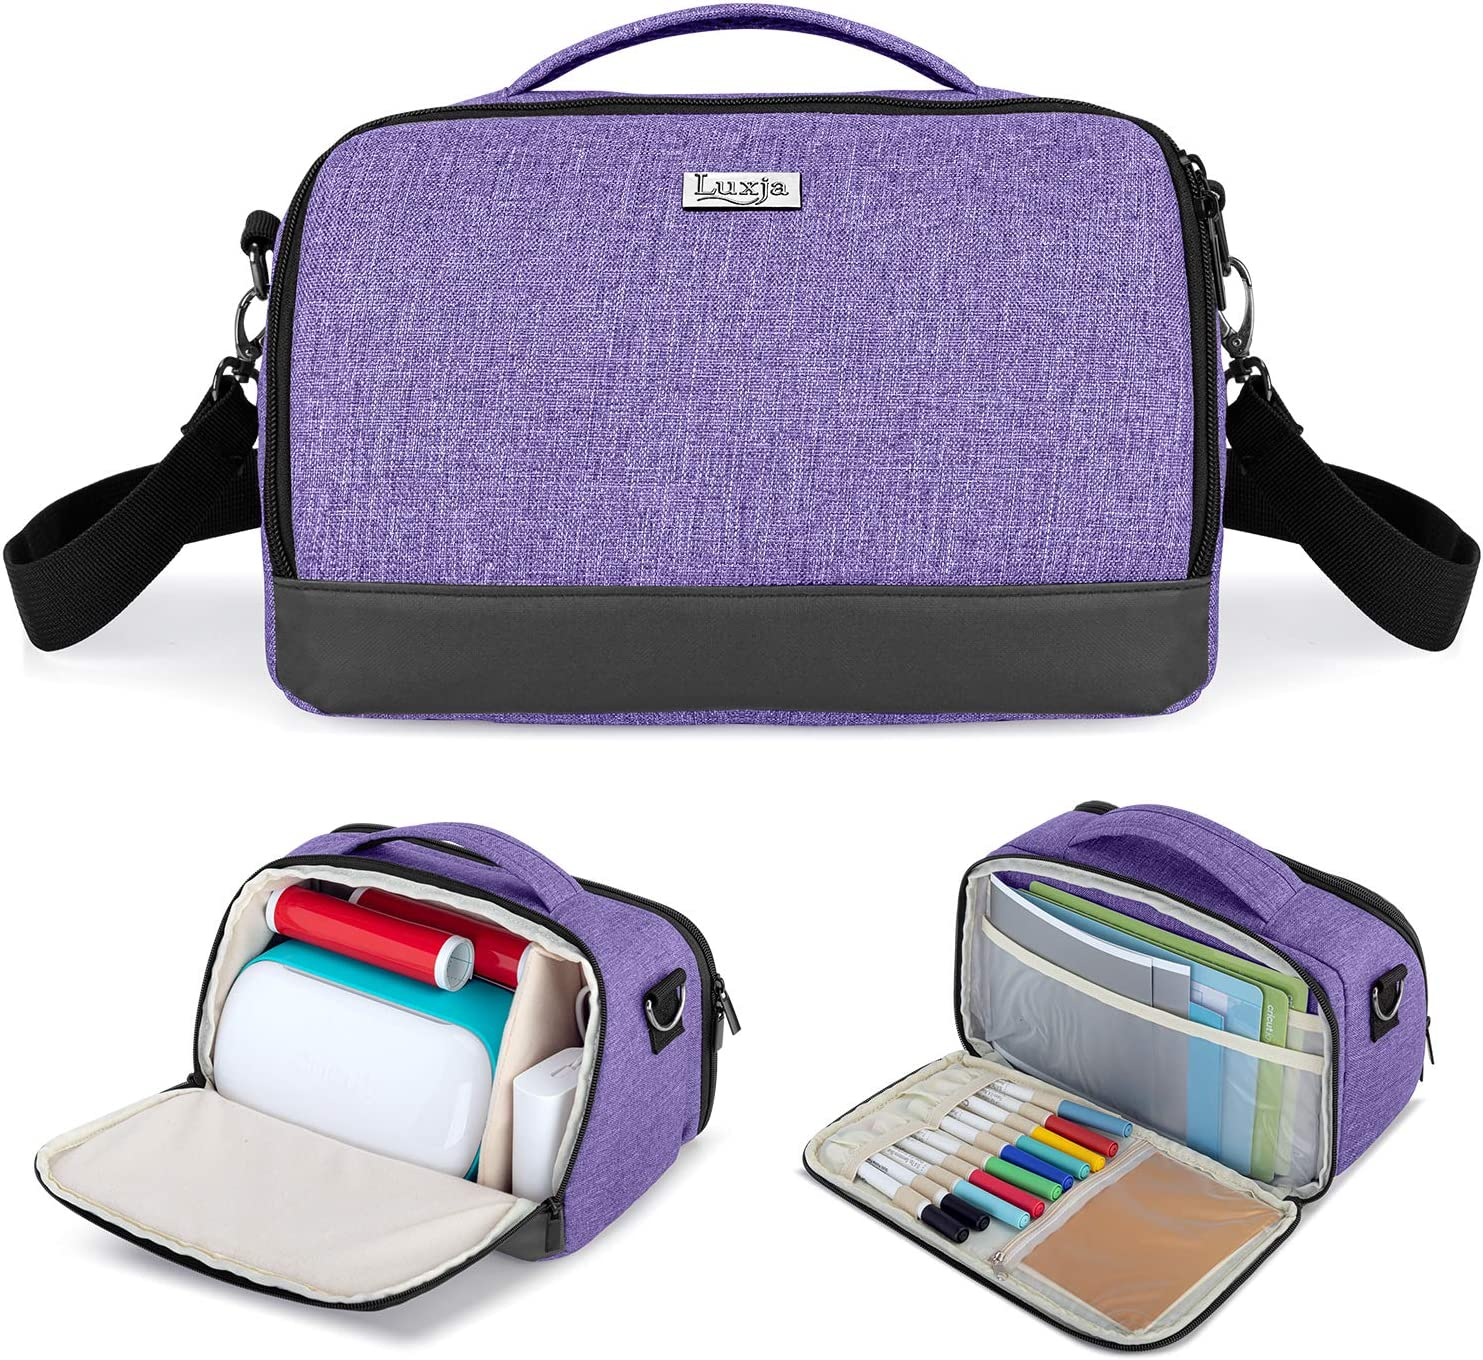 Yarwo Carrying Case Compatible with Cricut Joy Portable Tote Bag with Pockets for Craft Tools Set Black